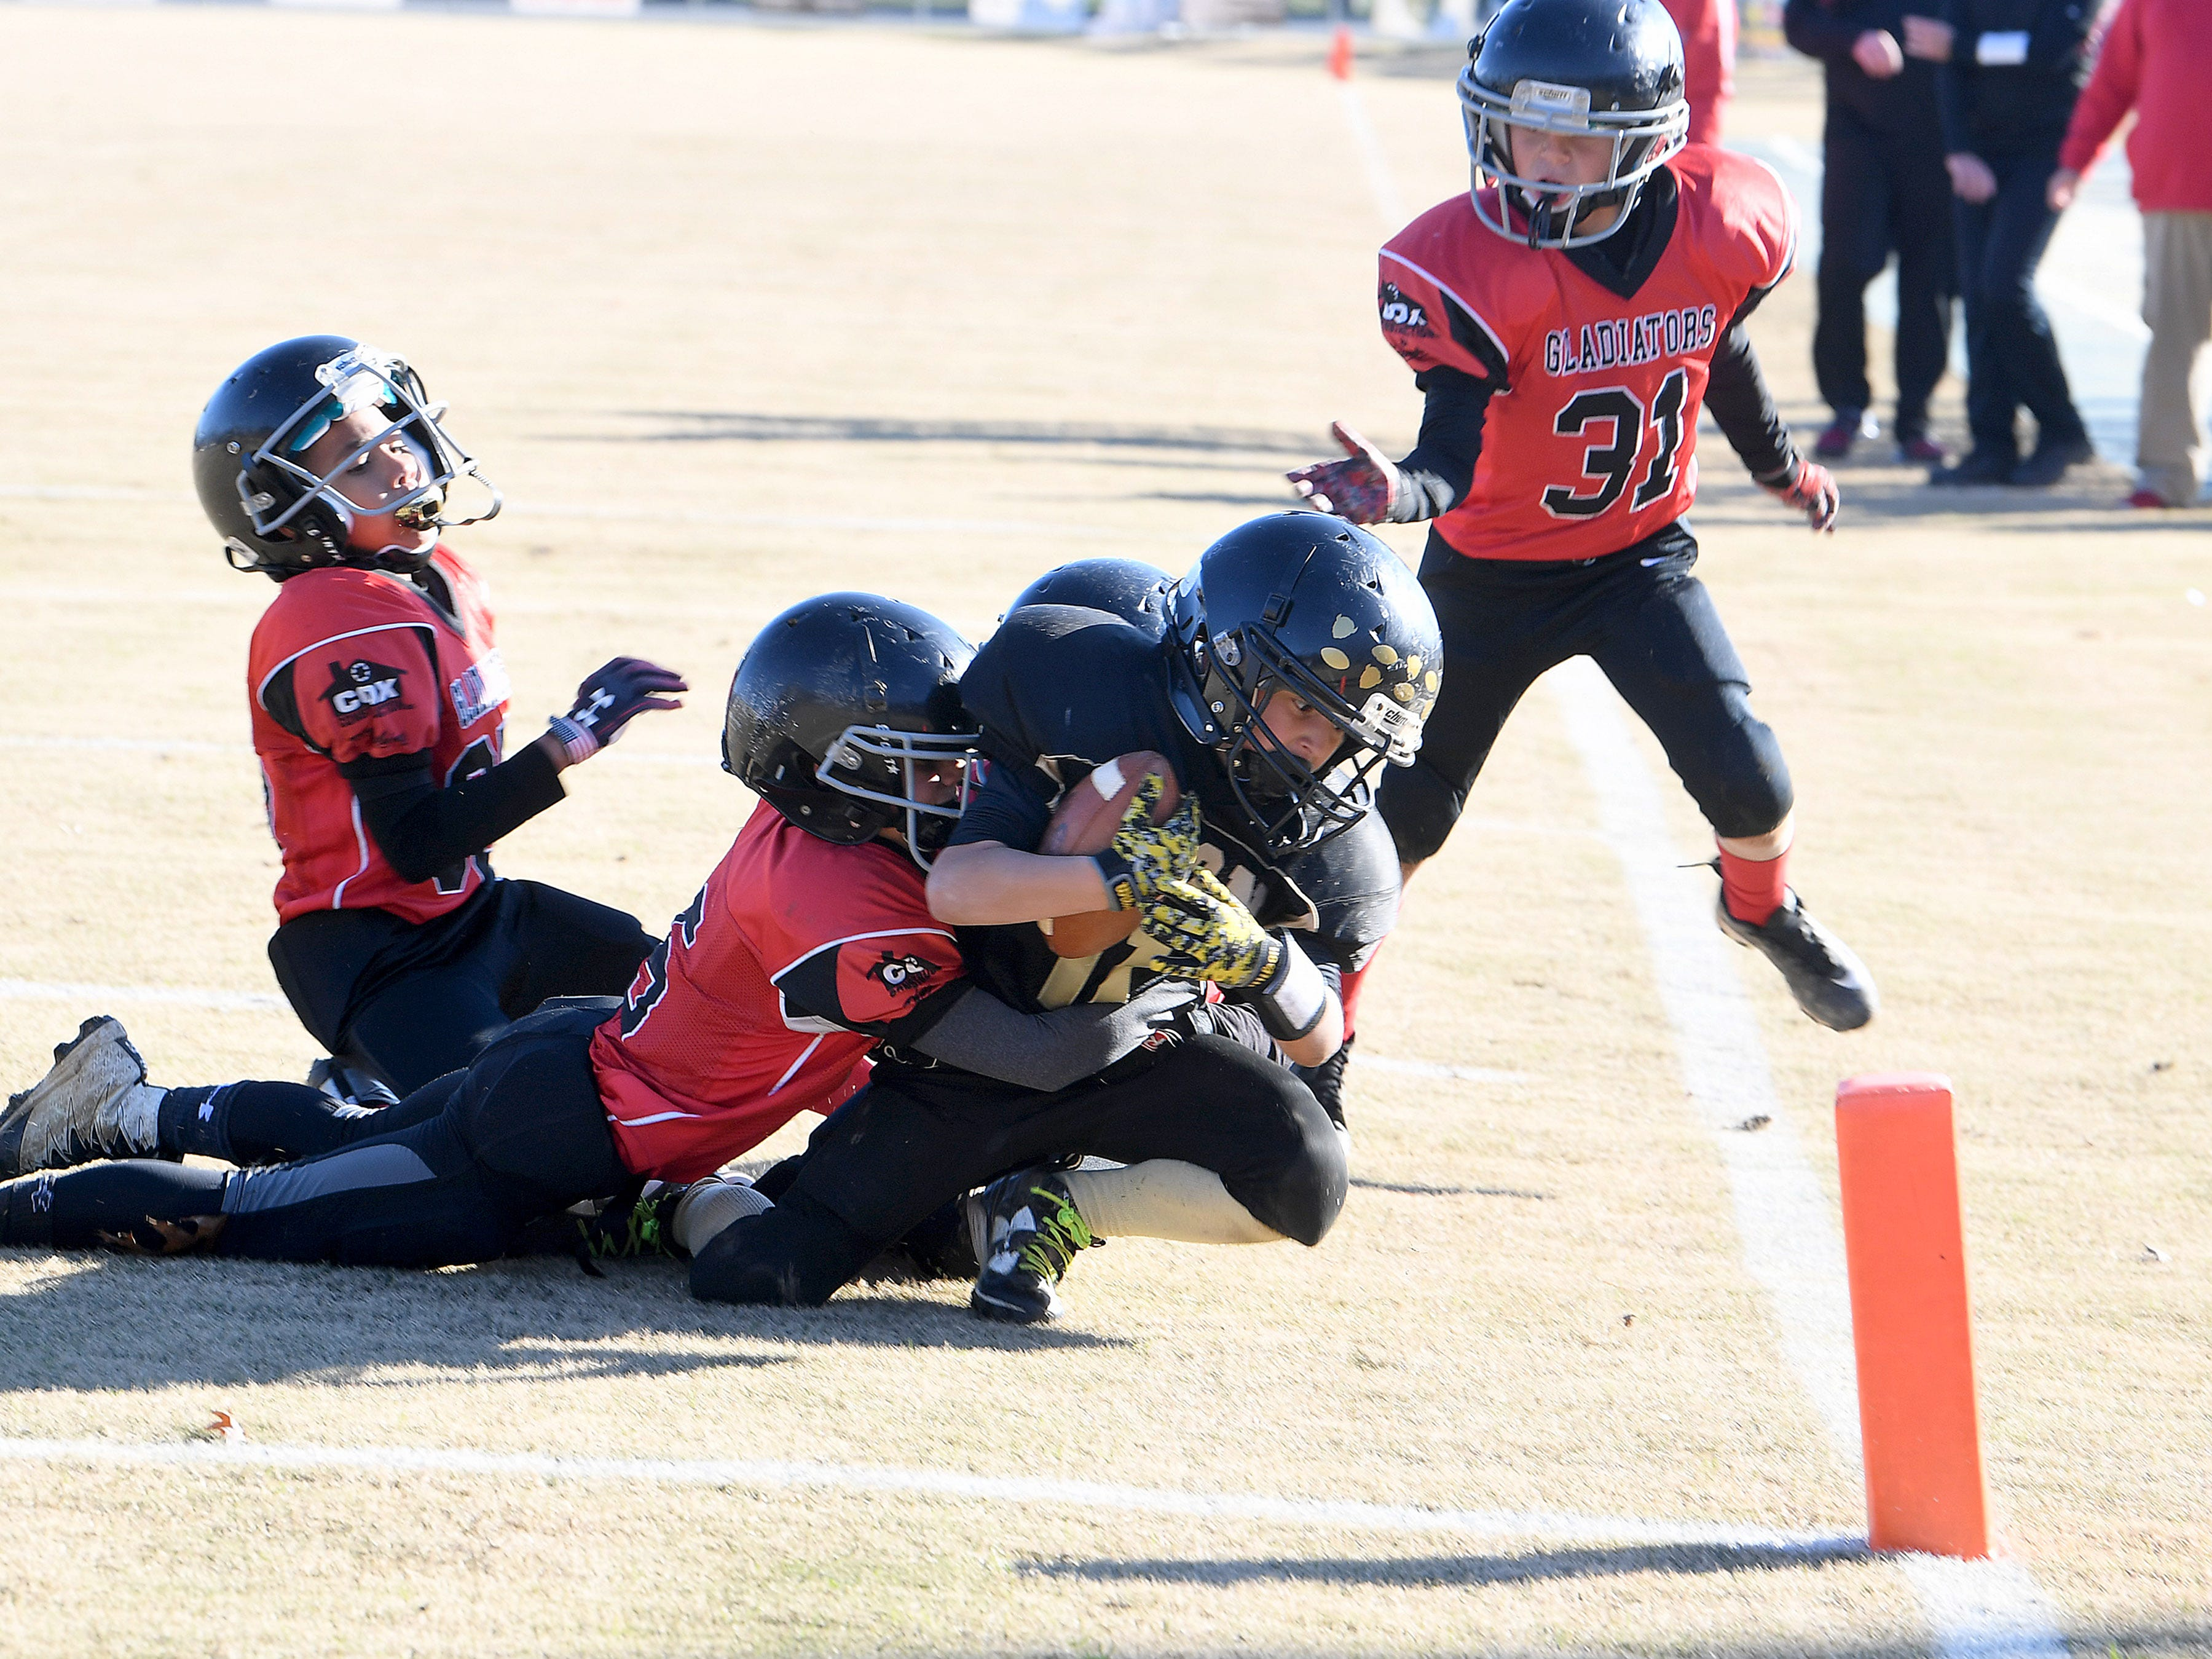 Buffalo Gap's Peyton Loan is wrapped up and brought down by the Riverheads' defense just short of the end zone  during the Augusta County Quarterback Club Midget Super Bowl in Fishersville on Sunday, Nov. 11, 2018. Riverheads beat Buffalo Gap, 25-6.